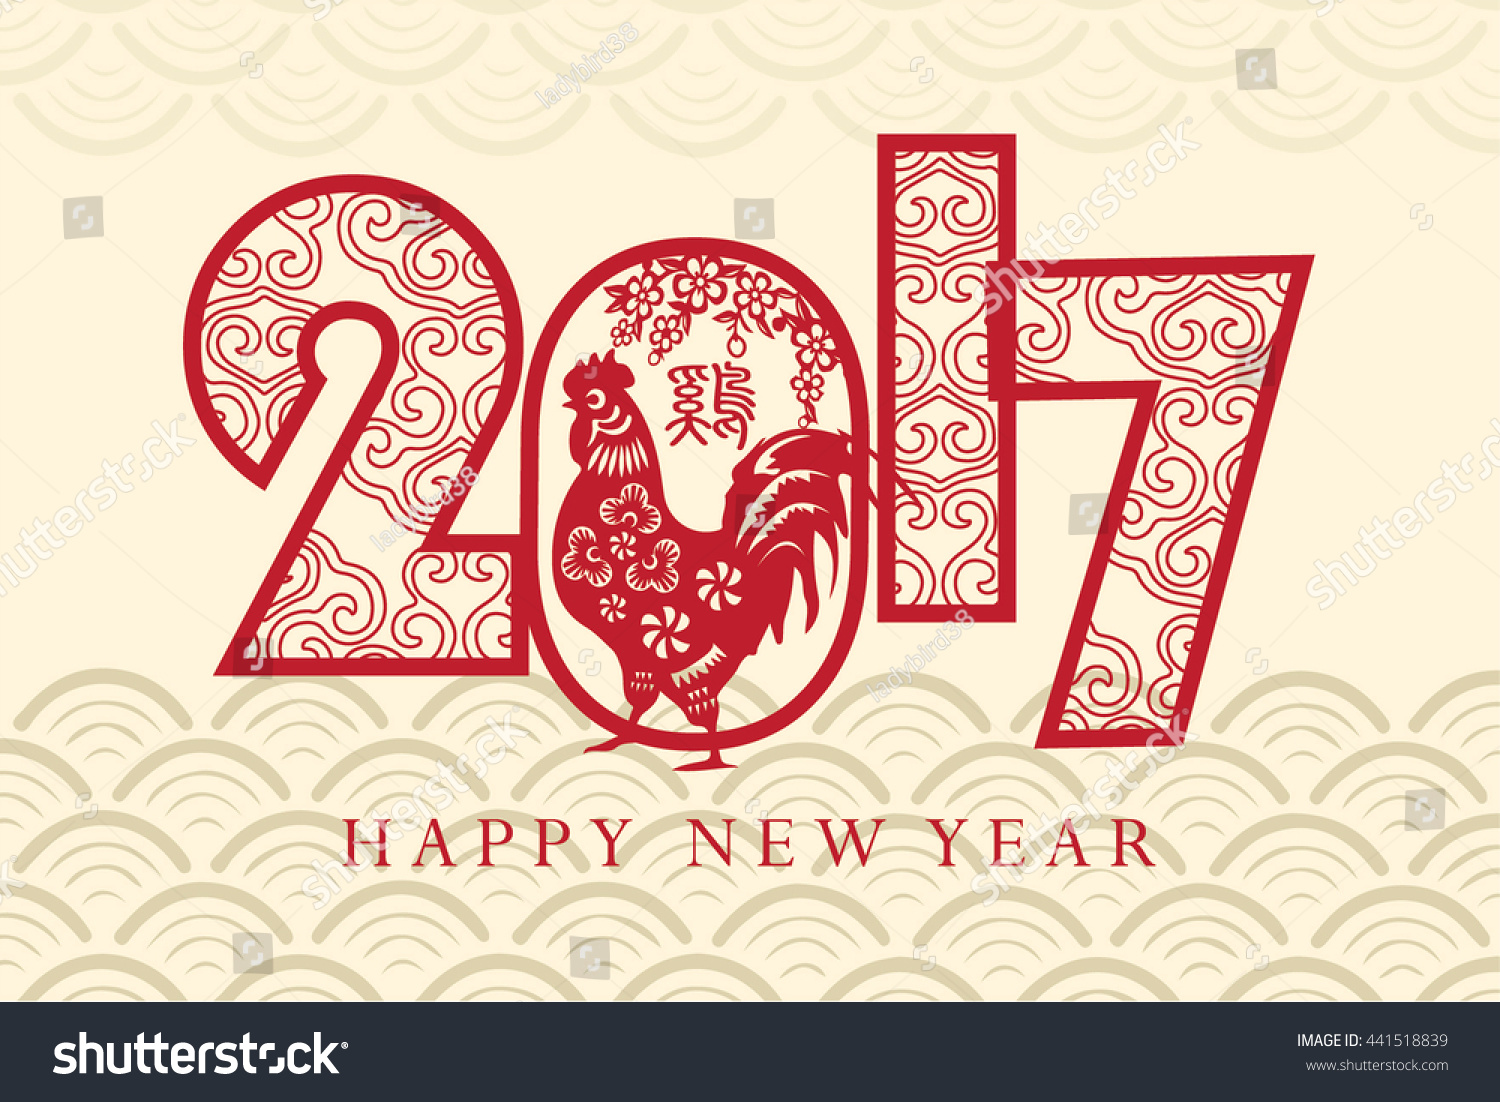 2017 new year chinese symbol rooster stock vector 441518839 2017 new year with chinese symbol of rooster the year of rooster rooster year buycottarizona